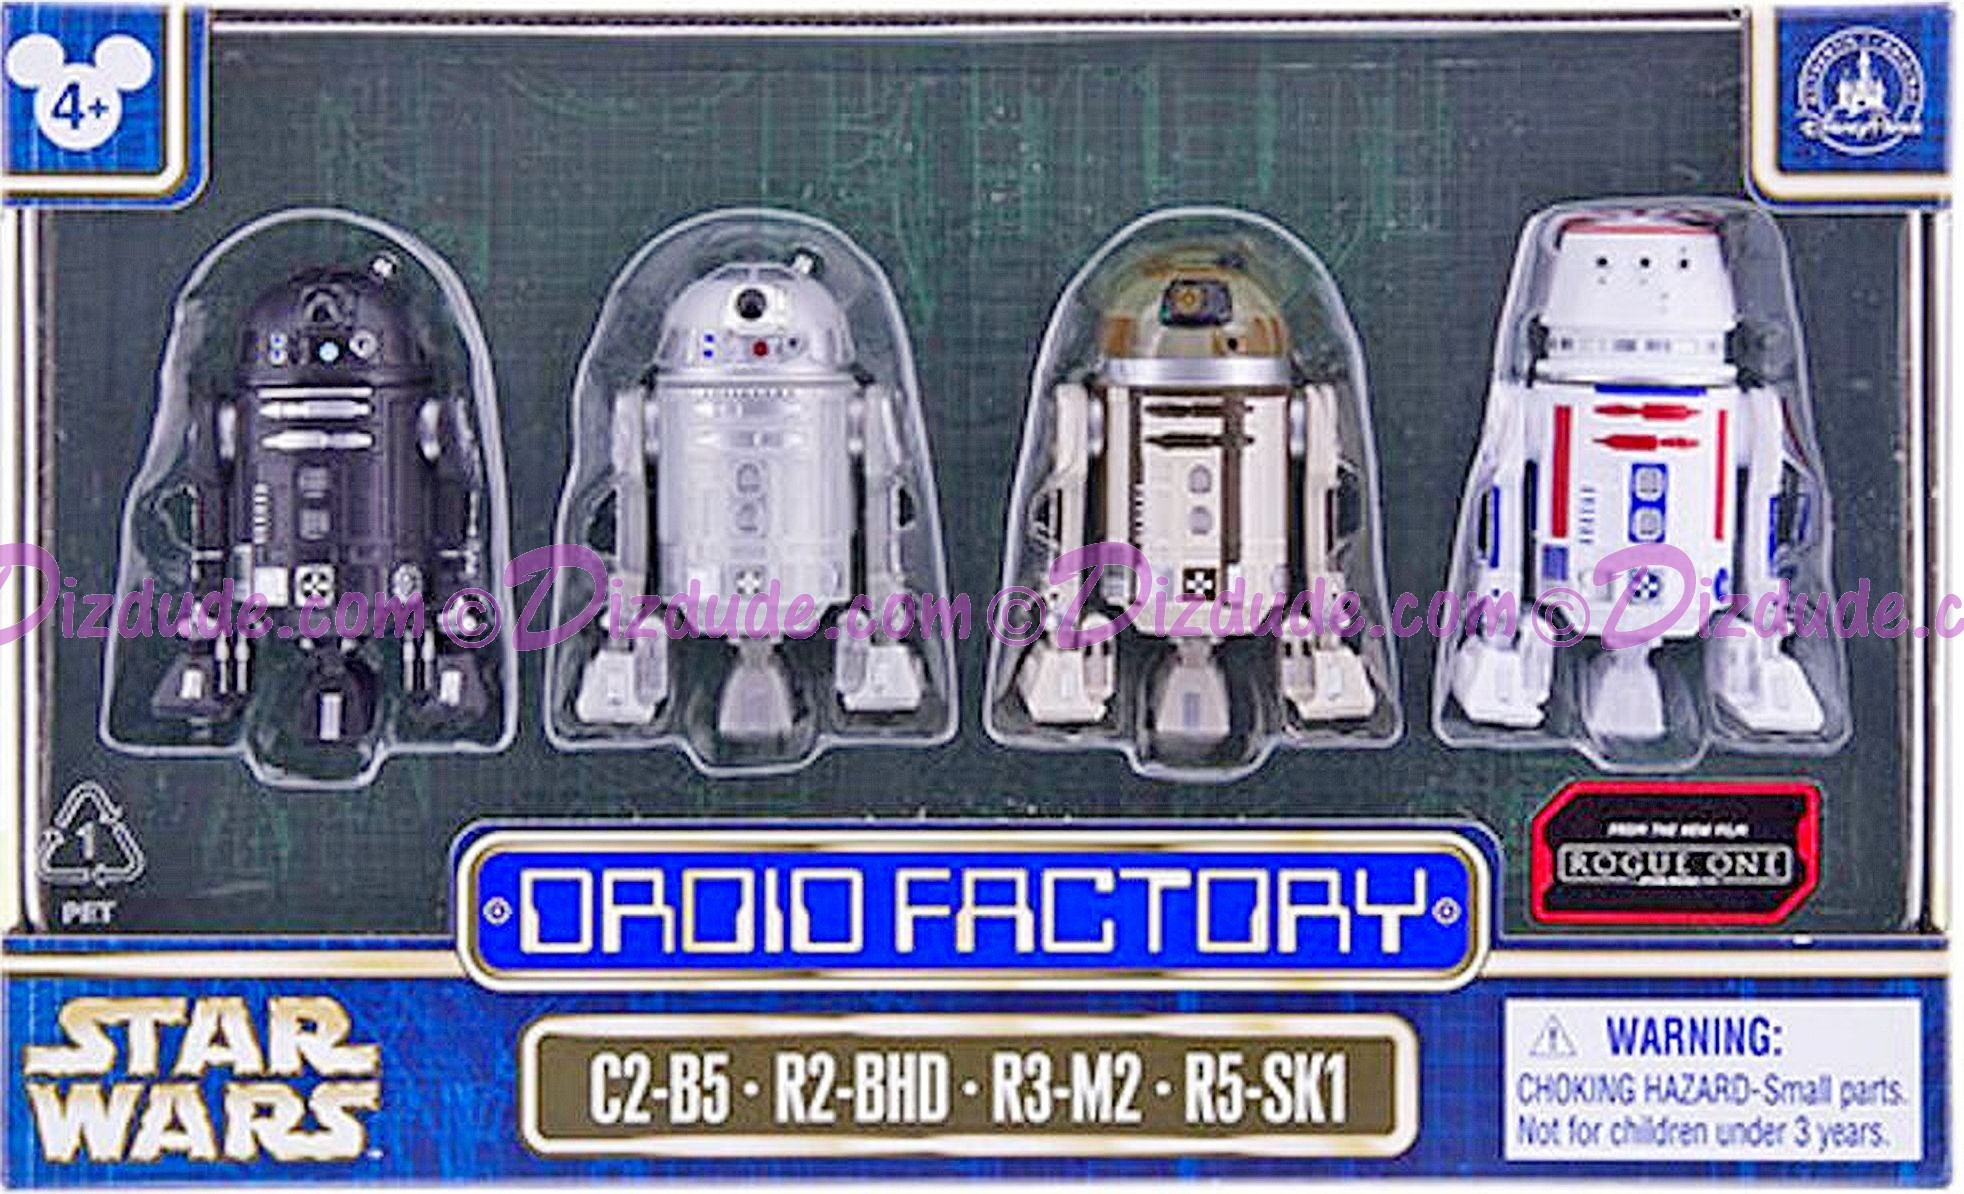 Star Wars Rogue One Set of 4 Astromech DROID FACTORY Series 2 Action Figures 3¾; Inch Multi Pack with C2-B5, R2-BHD, R3-M2 and R5-SK1 © Dizdude.com